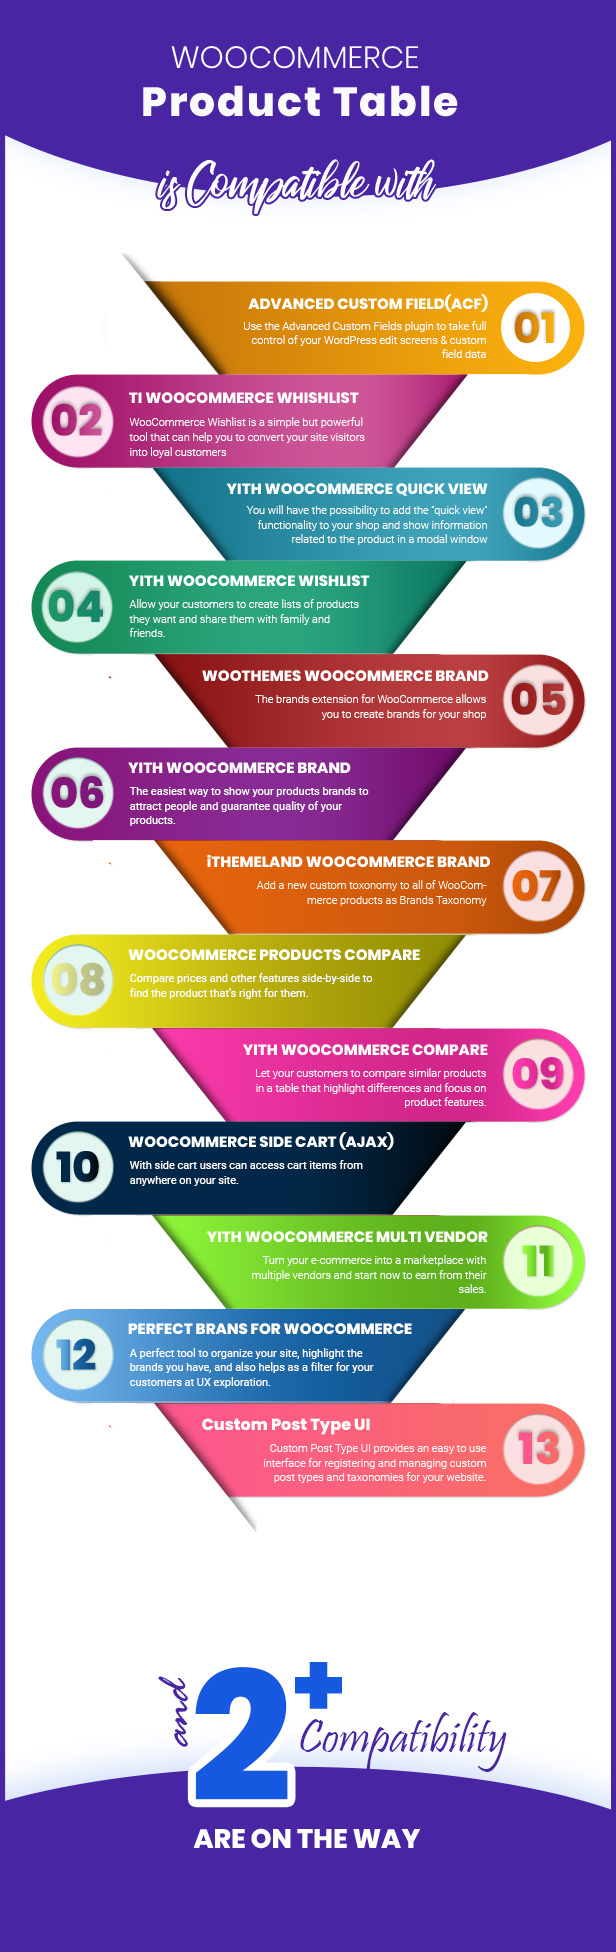 WooCommerce Product Table - 3